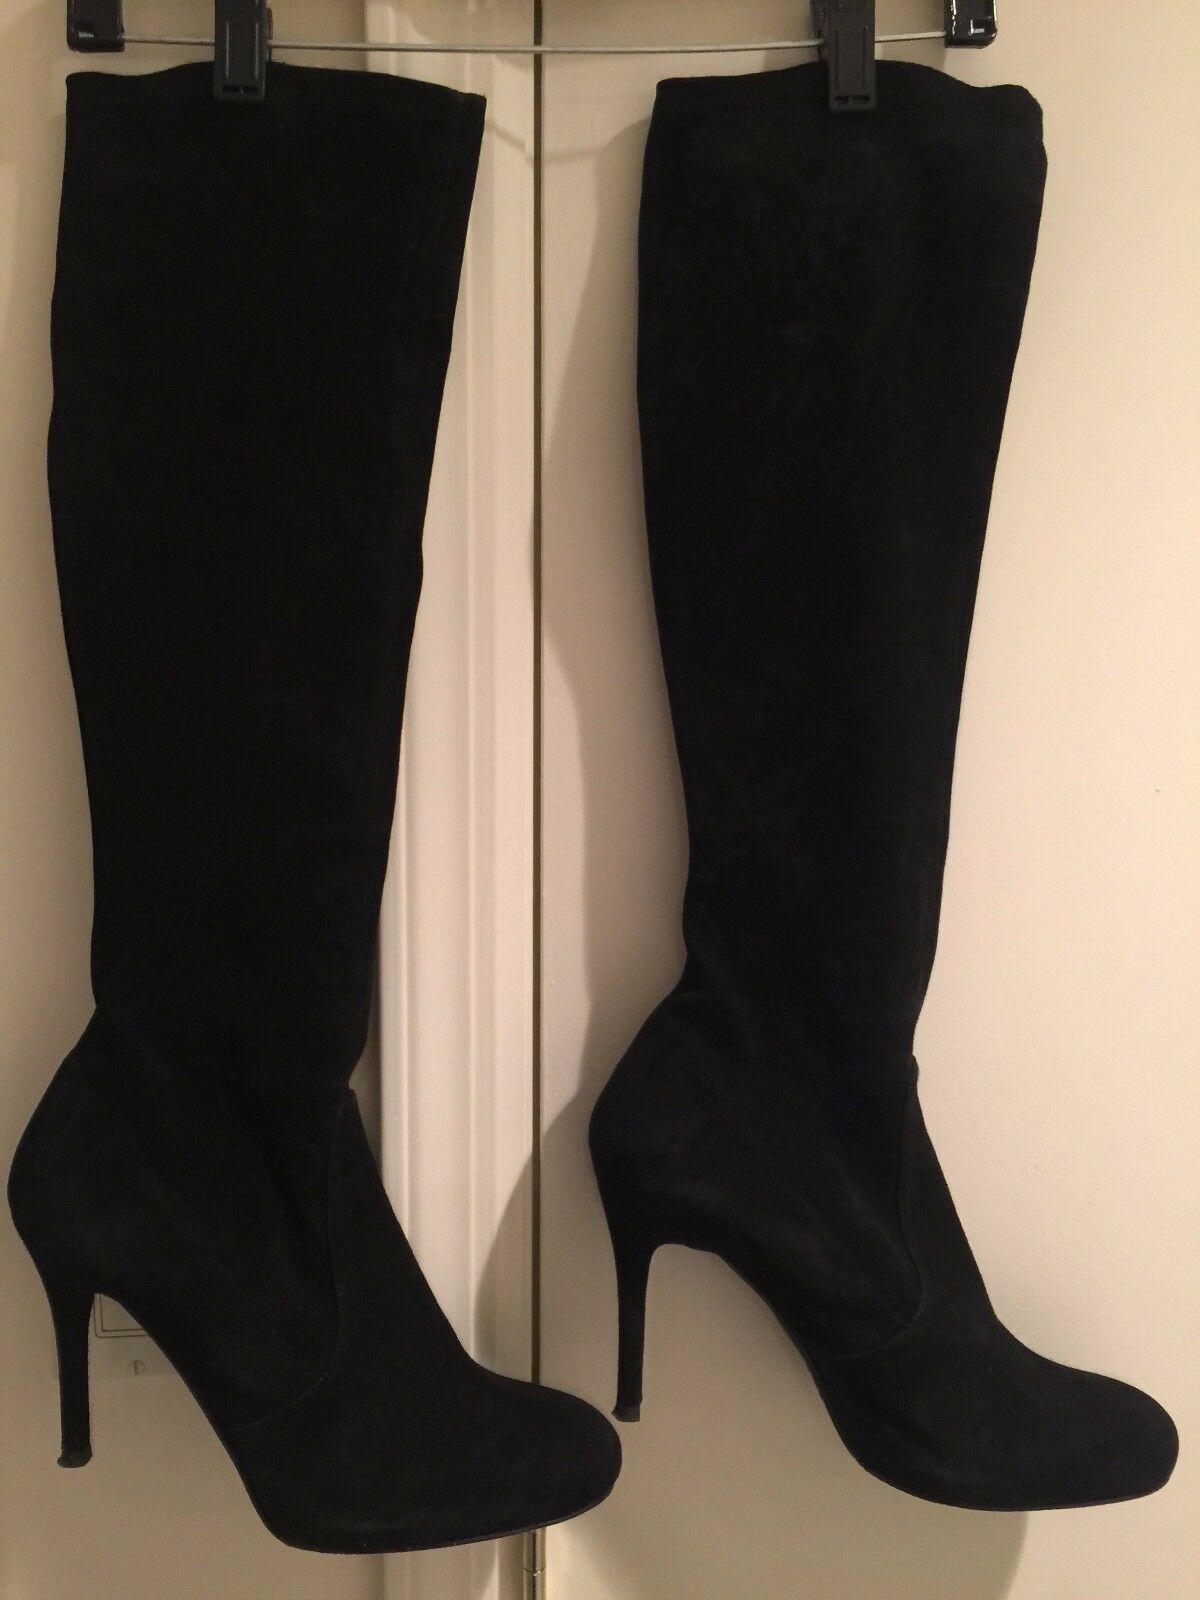 Stuart Weitzman, over the knee, black suede boots, size 11B, mint condition